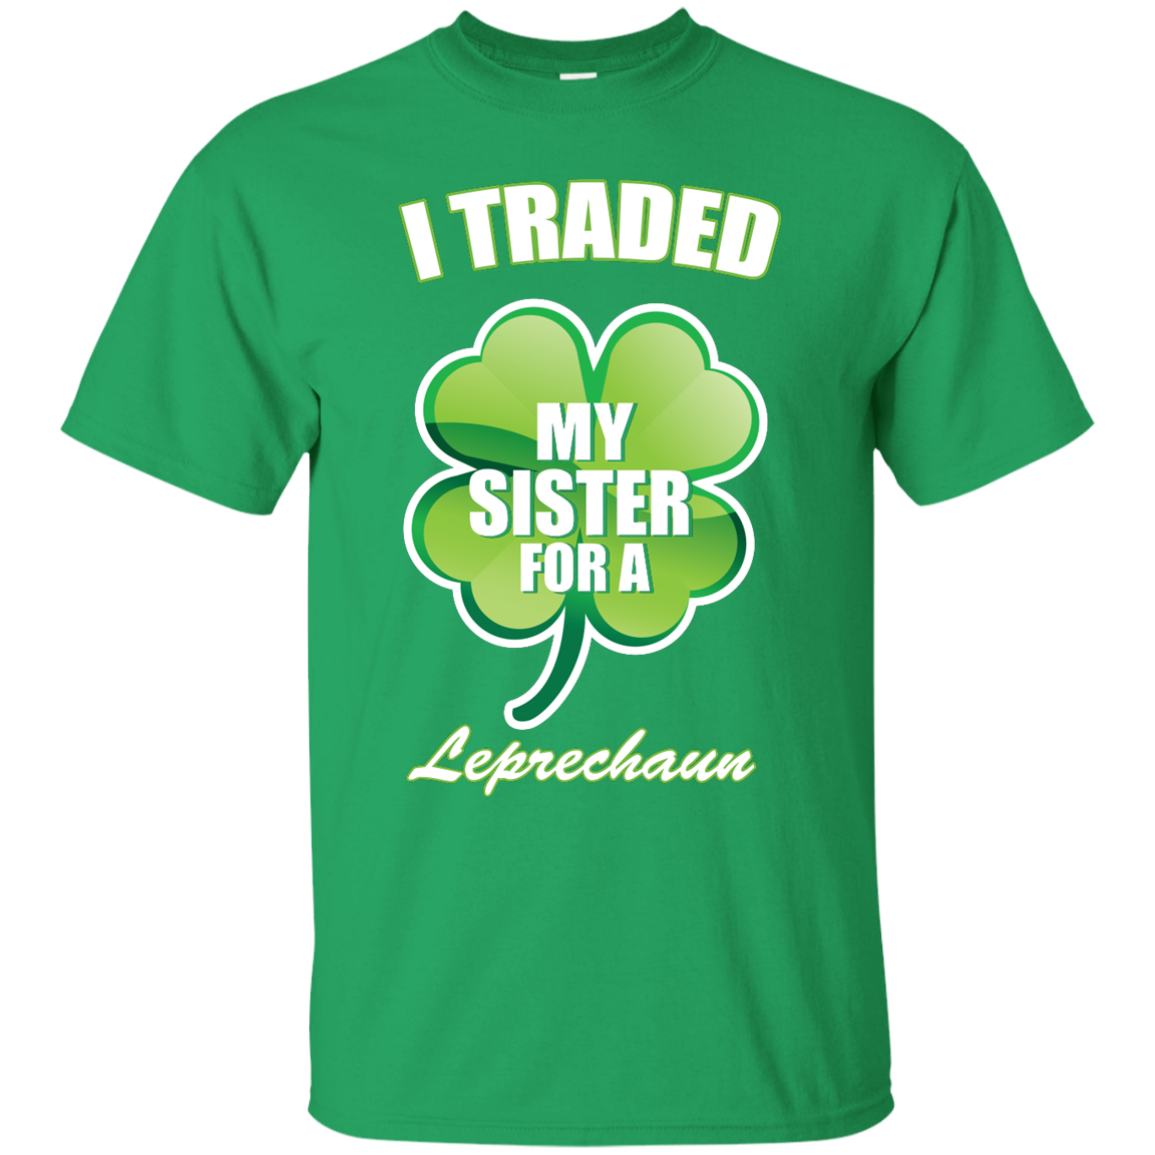 069cf8c6f St Patrick's Day: I Traded My Sister For A Leprechaun T-Shirt